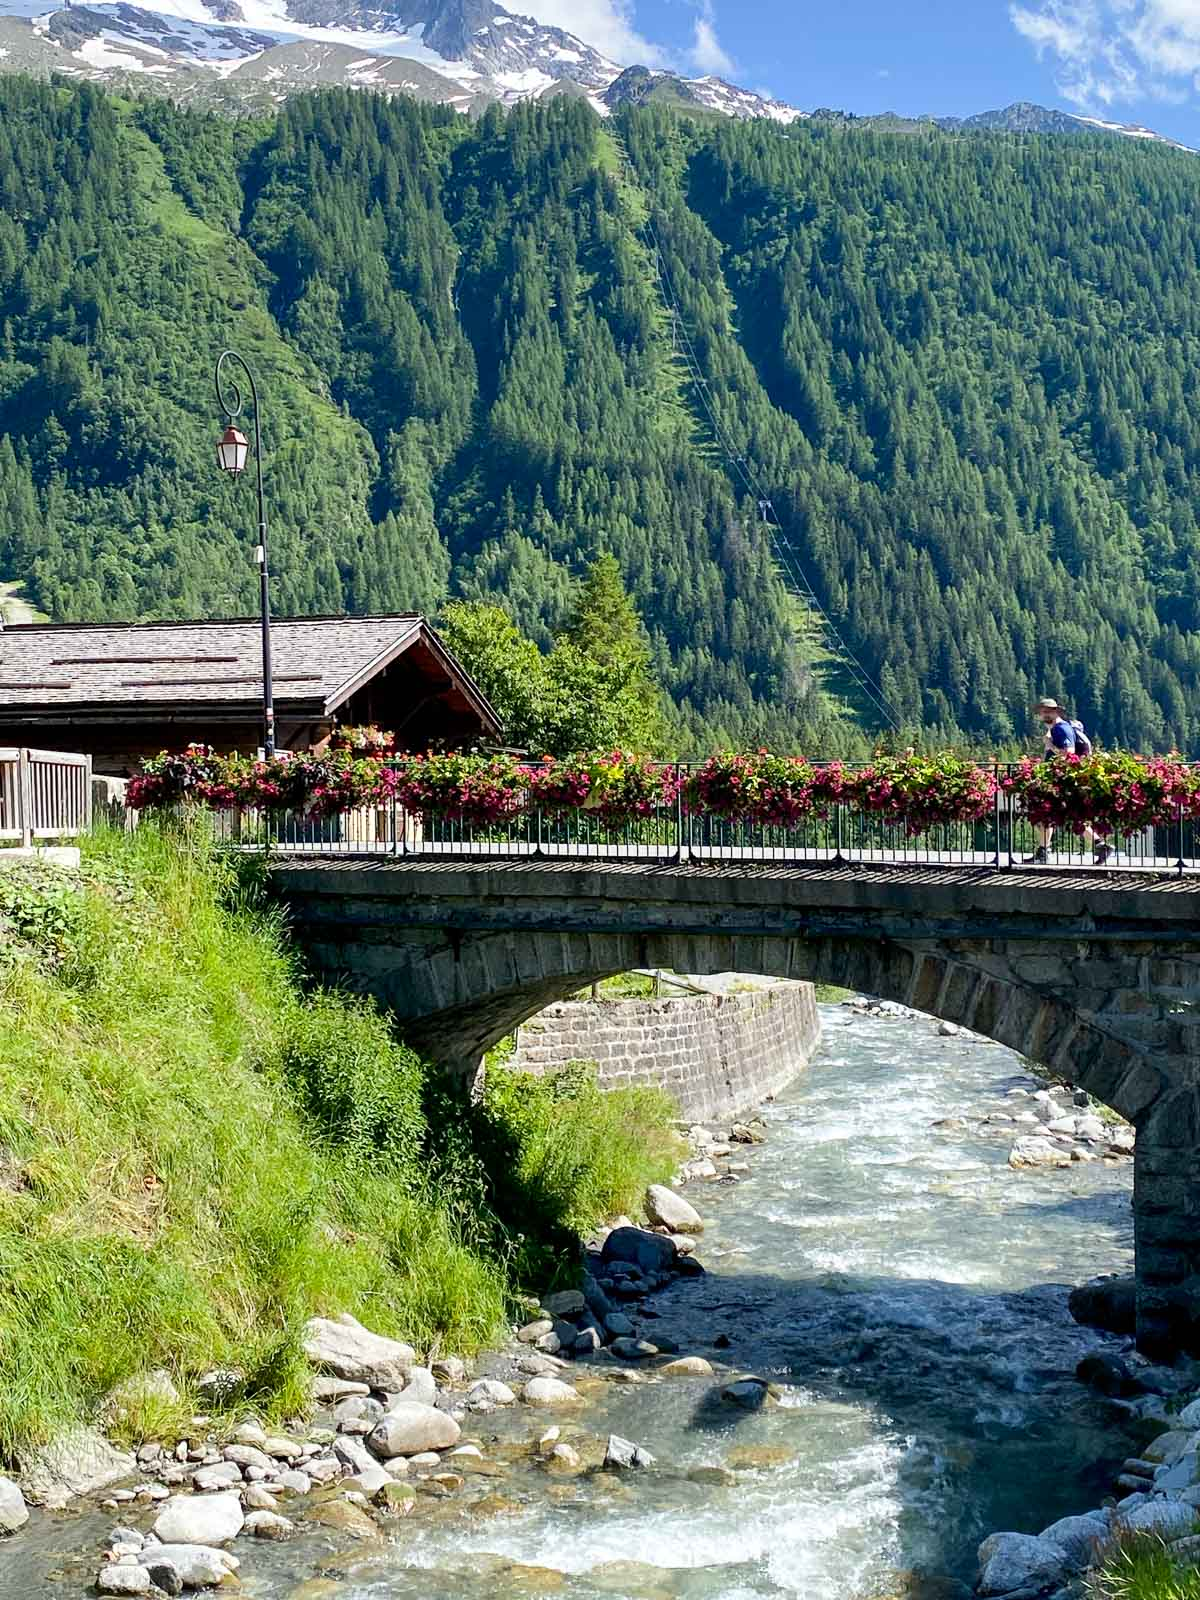 Vertical photo of the town bridge festooned with flowers over a mountain river in Argentiére, France.